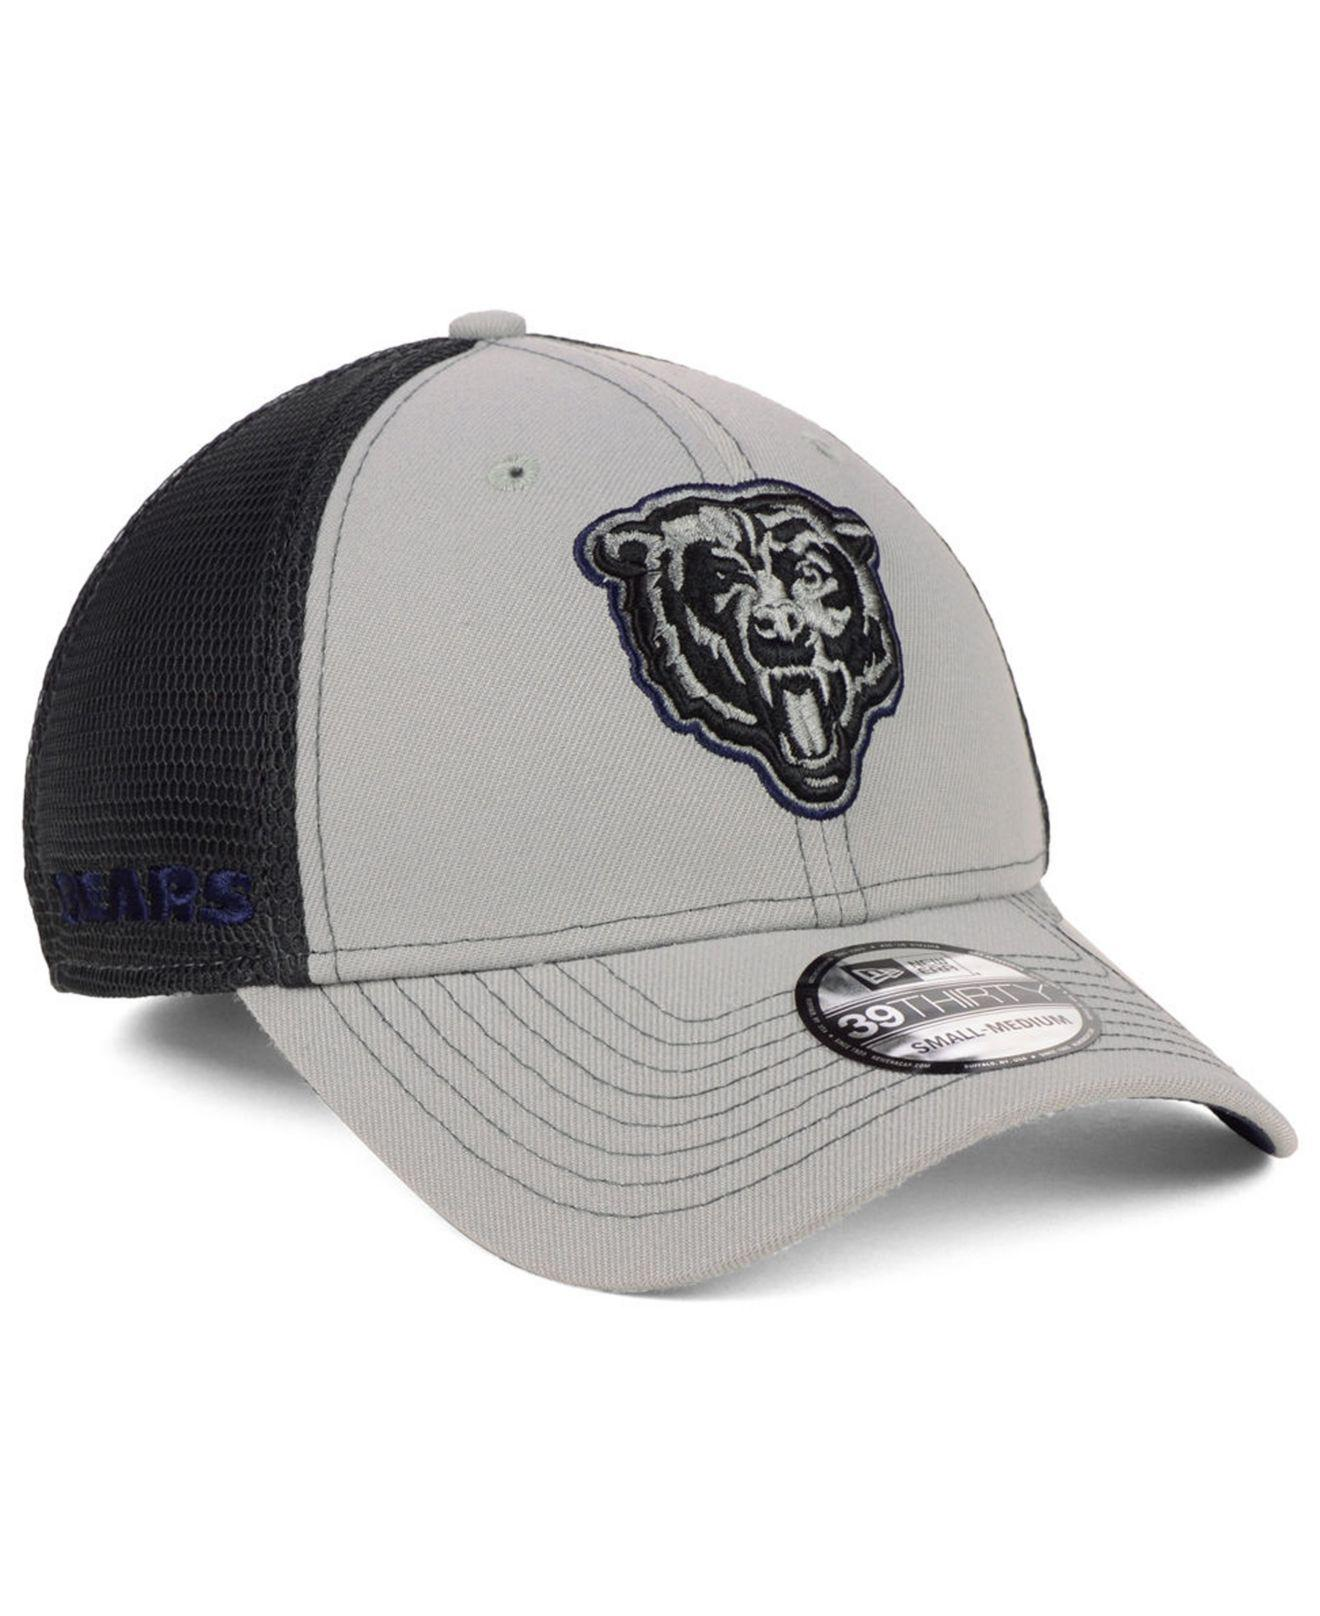 Chicago Bears Roster: Authentic Chicago Bears New Era Nfl Jr Team Classic